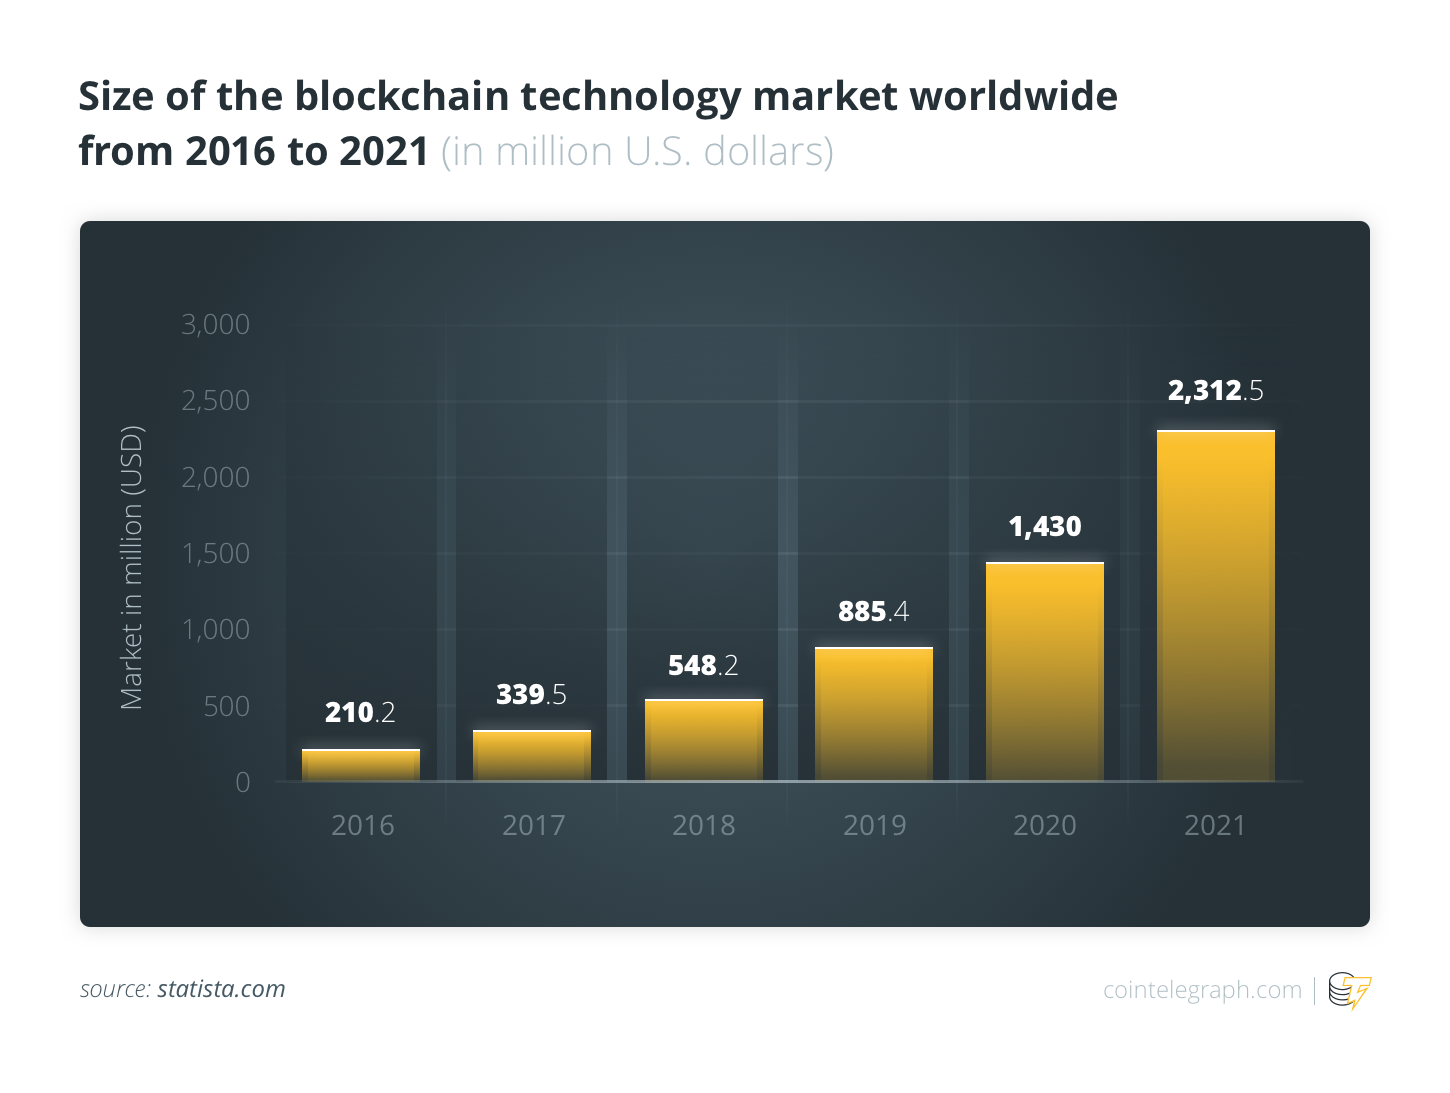 Size of the blockchain technology market worldwide from 2016 to 2021